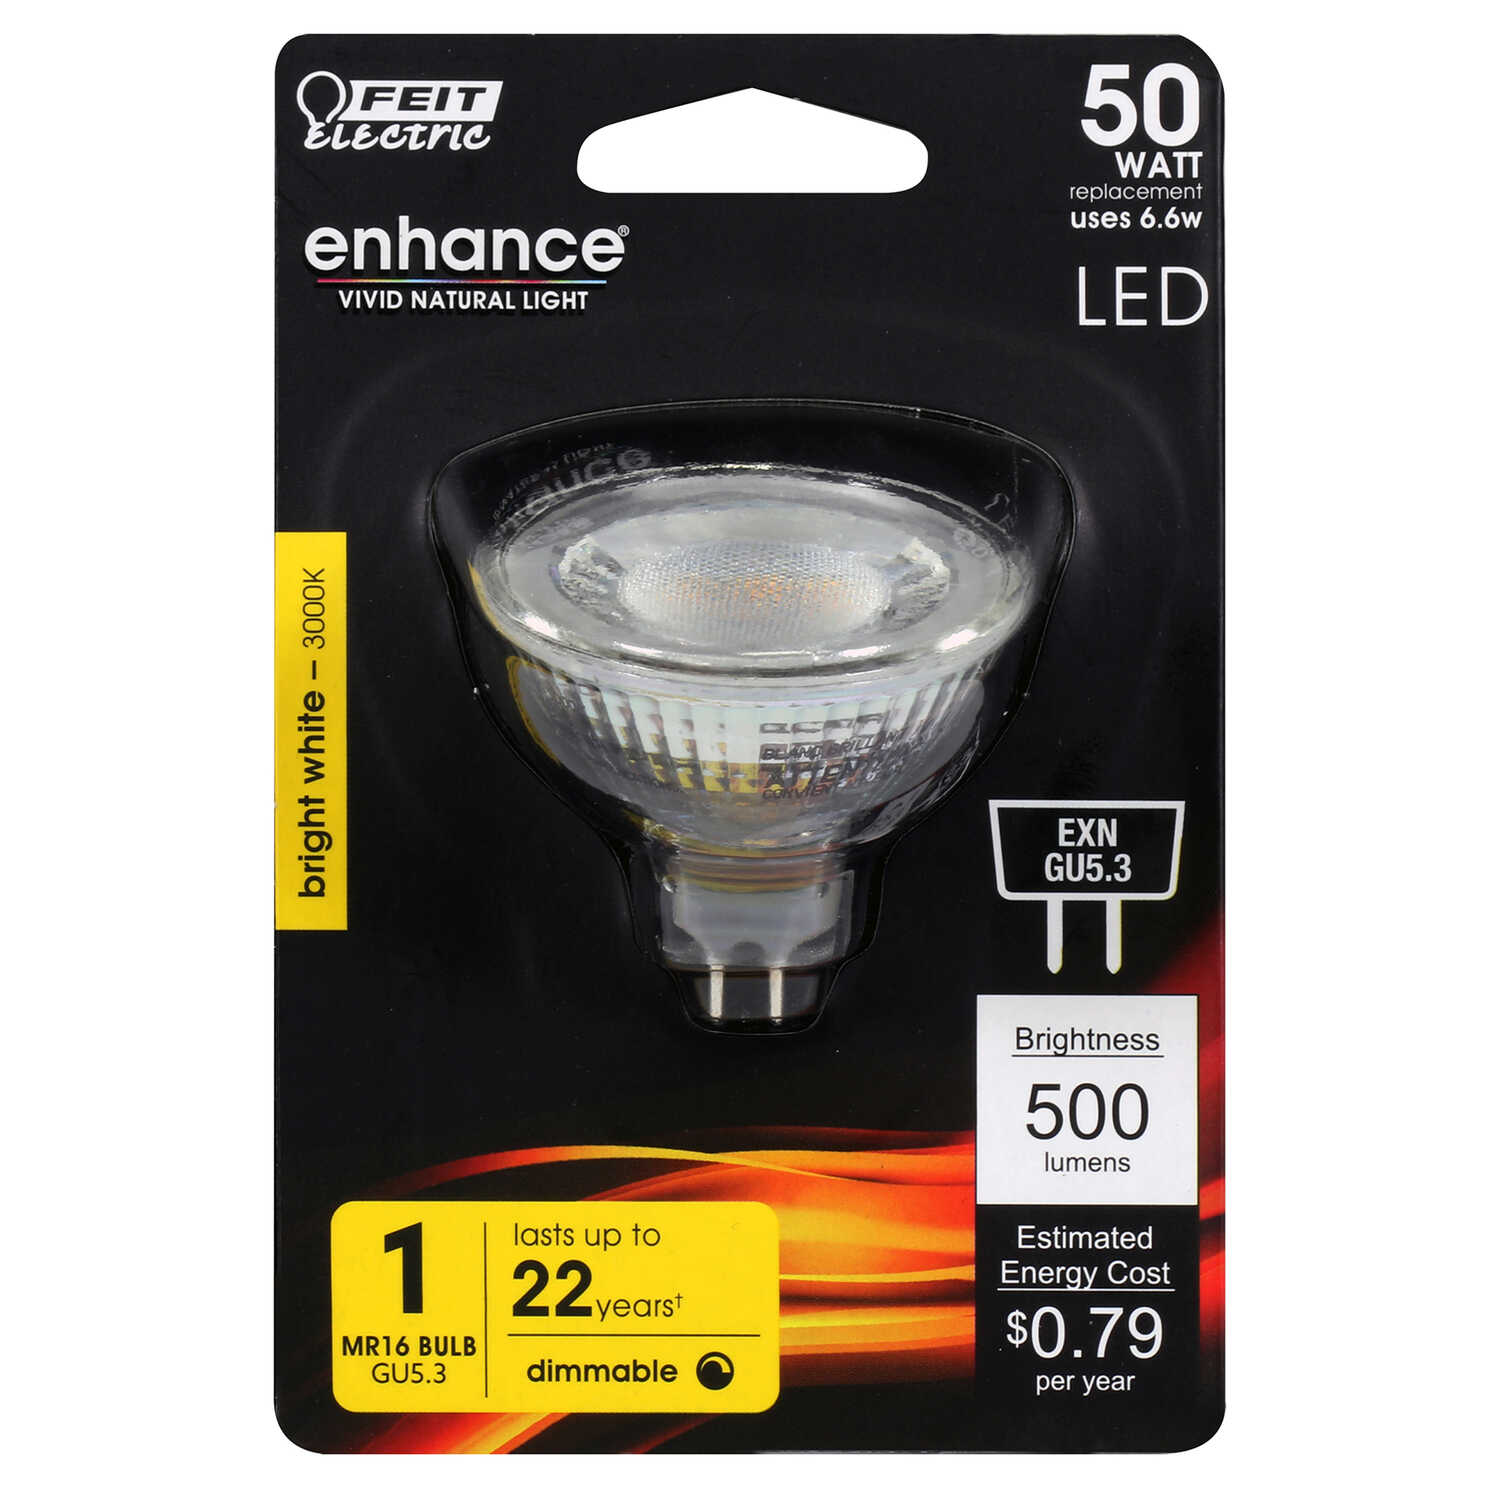 FEIT Electric  6.6 watts MR16  LED Bulb  500 lumens Bright White  Reflector  50 Watt Equivalence